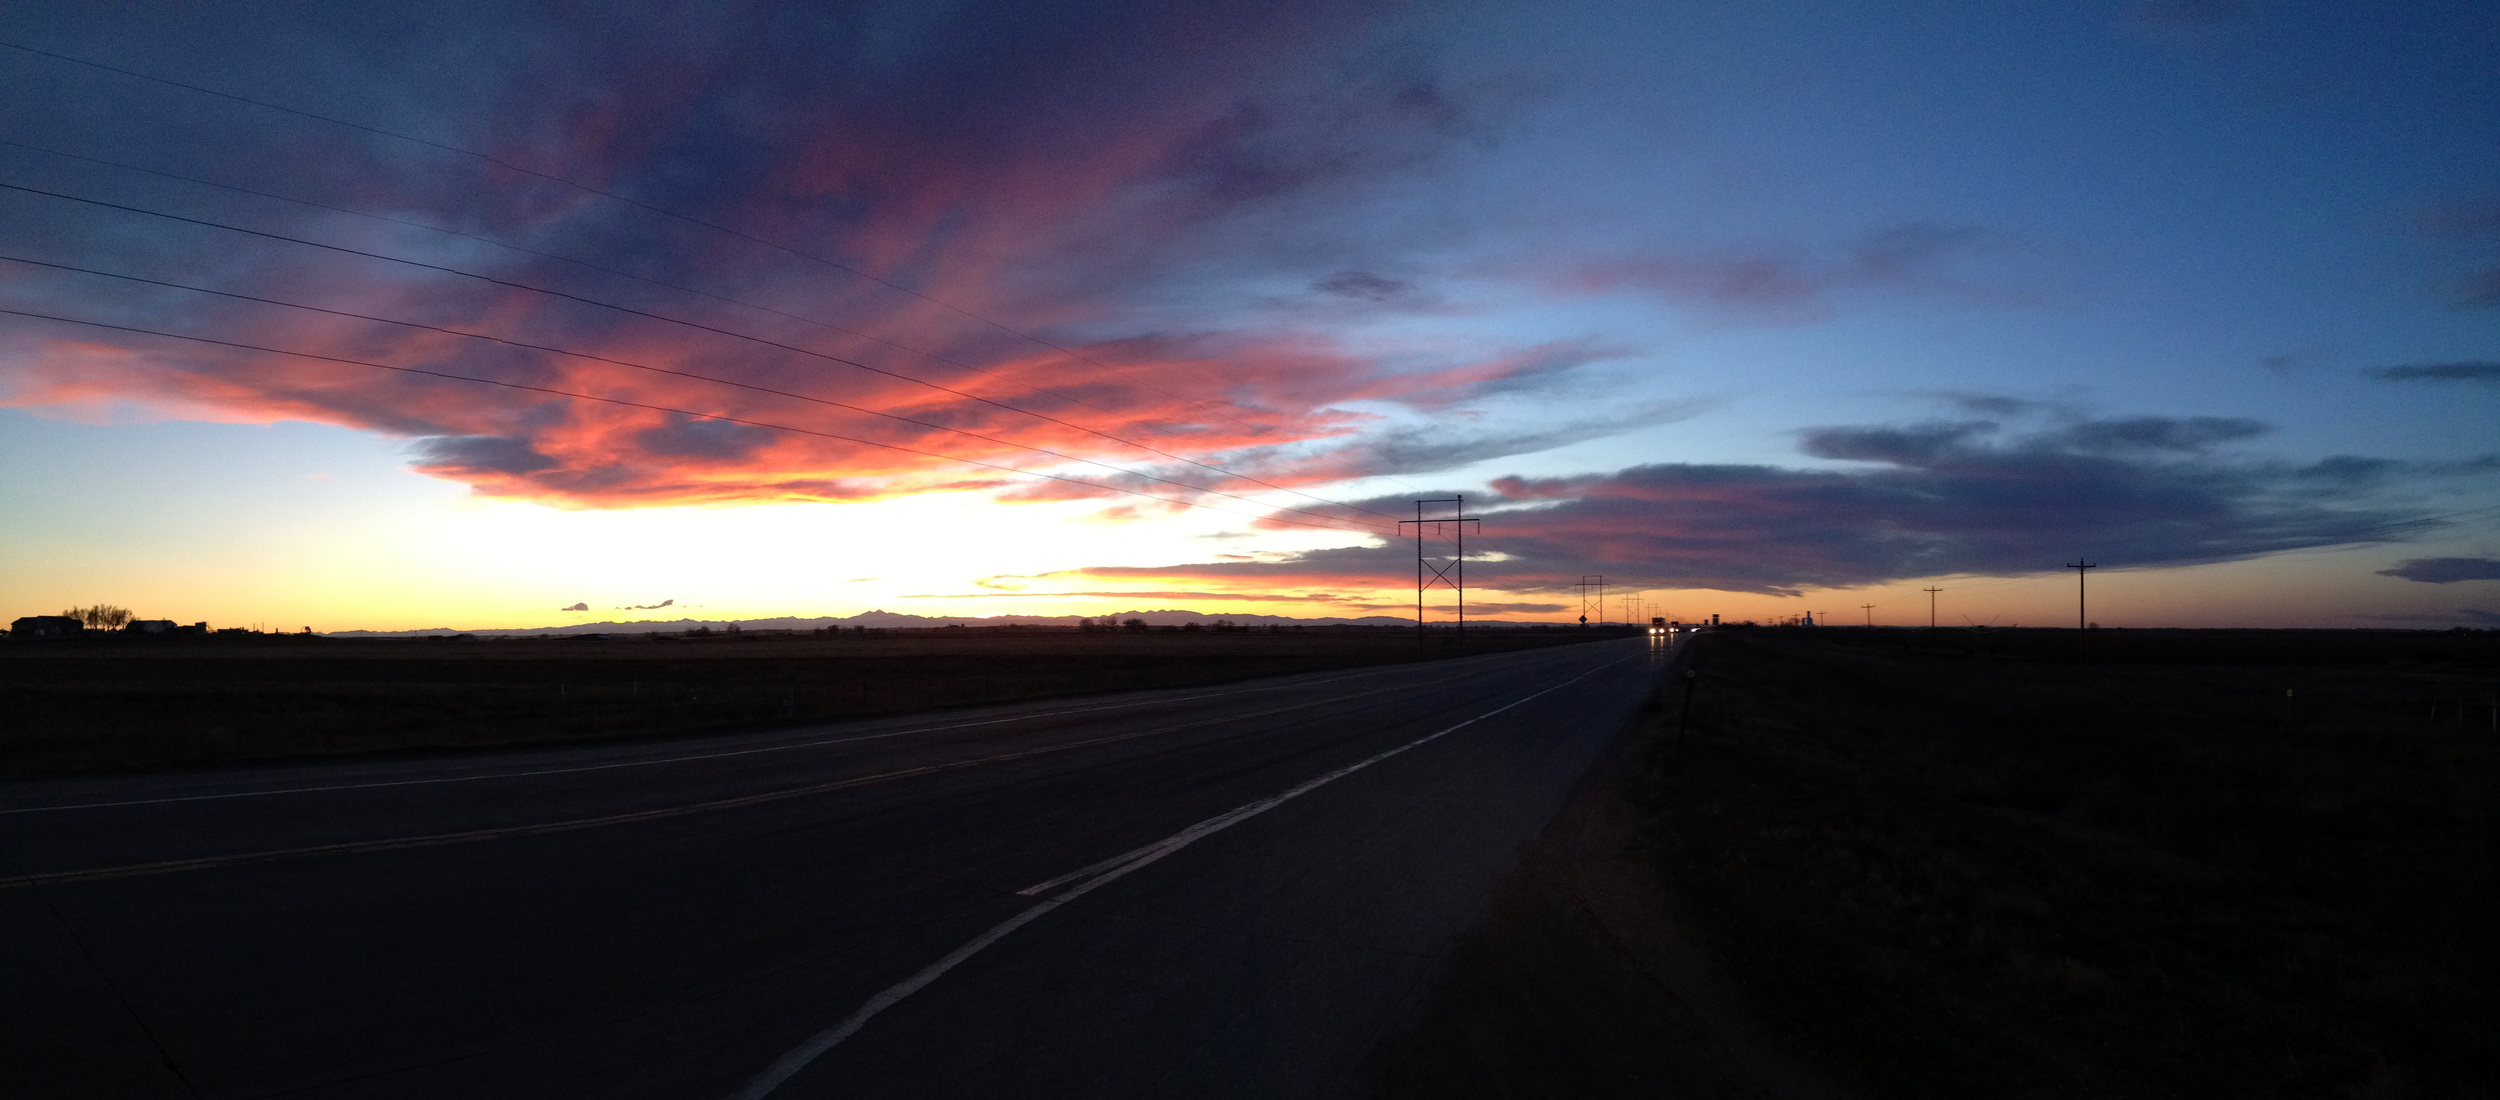 The most amazing thing was approaching the Rocky Mountains from a great distance and seeing them appear on the horizon. I was so blessed to get this beautiful sunset along with it. COLORADO.